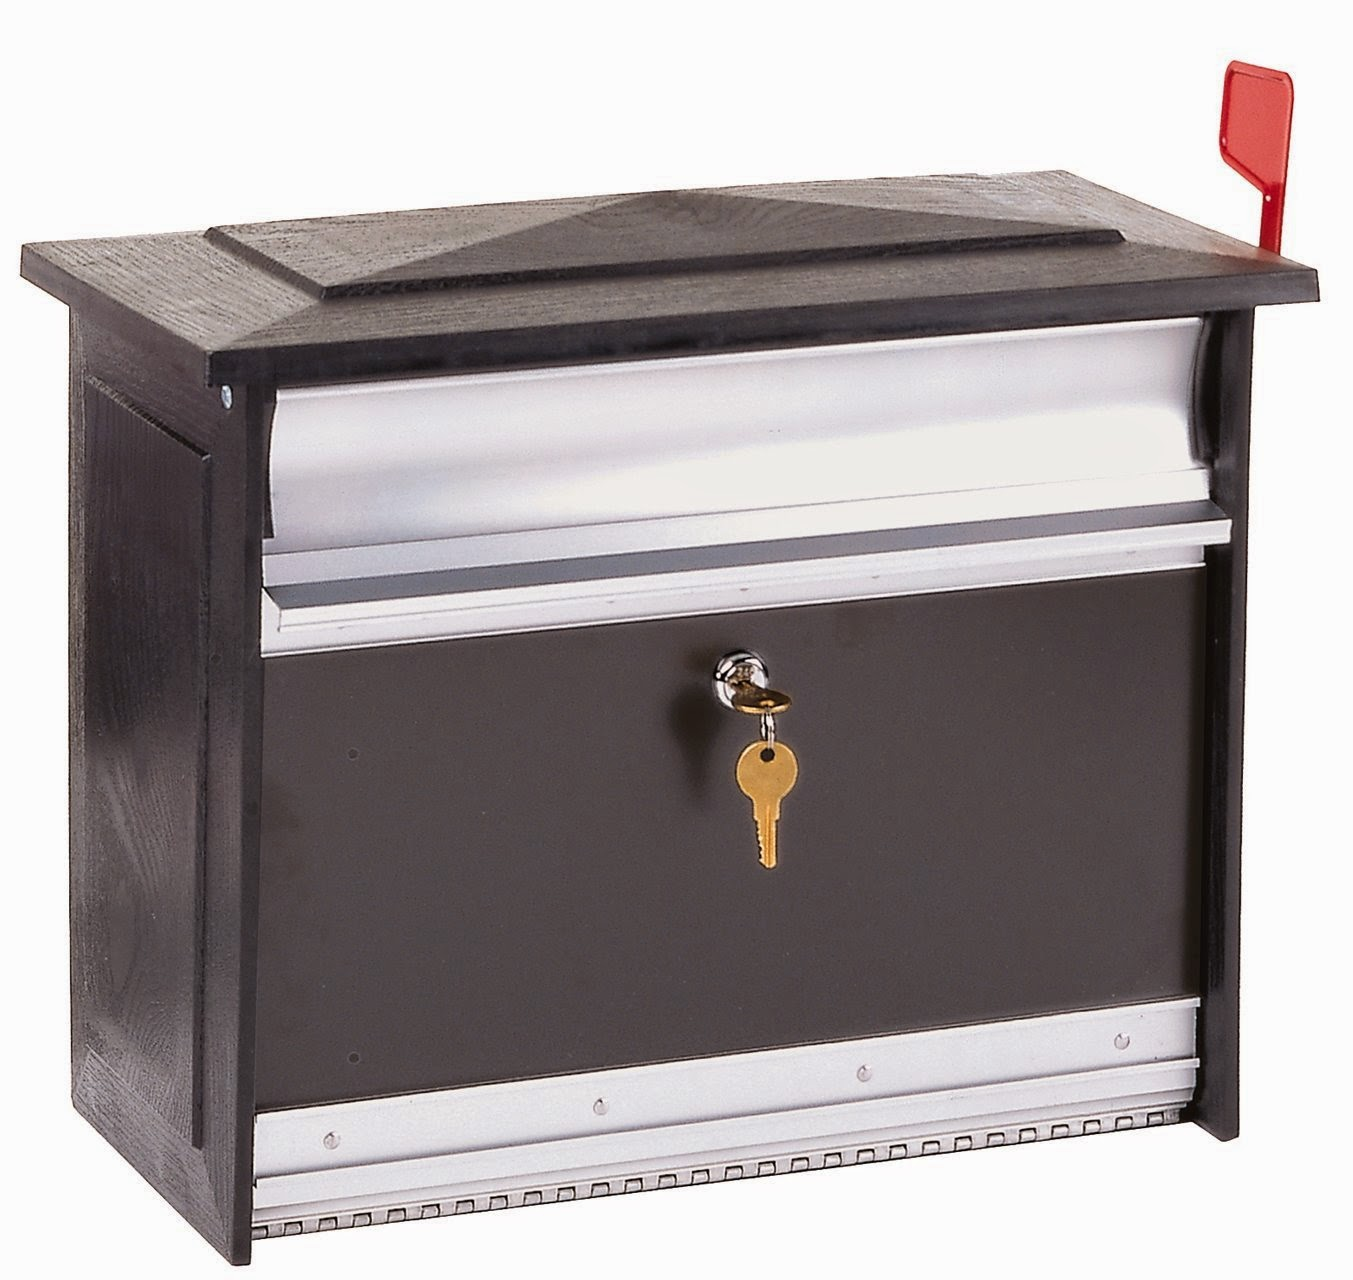 grey lockable mailbox design ideas